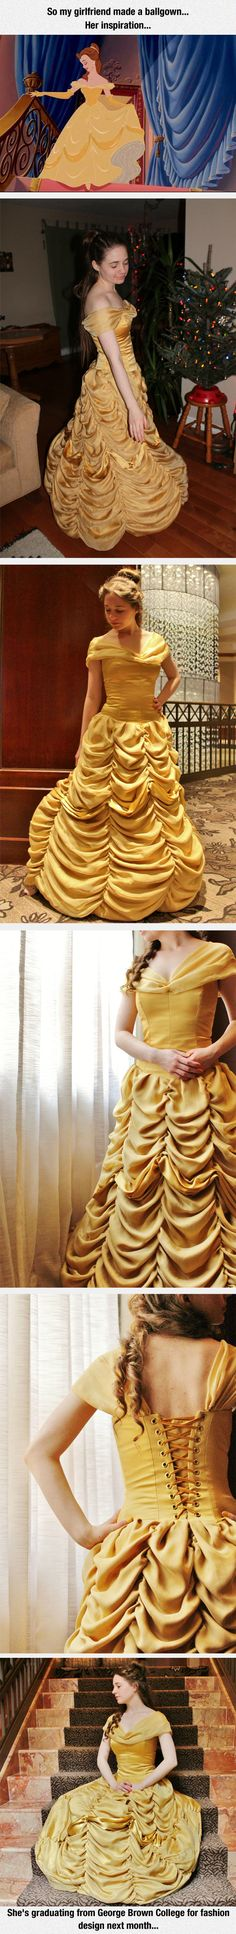 Amazing Dress Inspired By Belle the Beauty